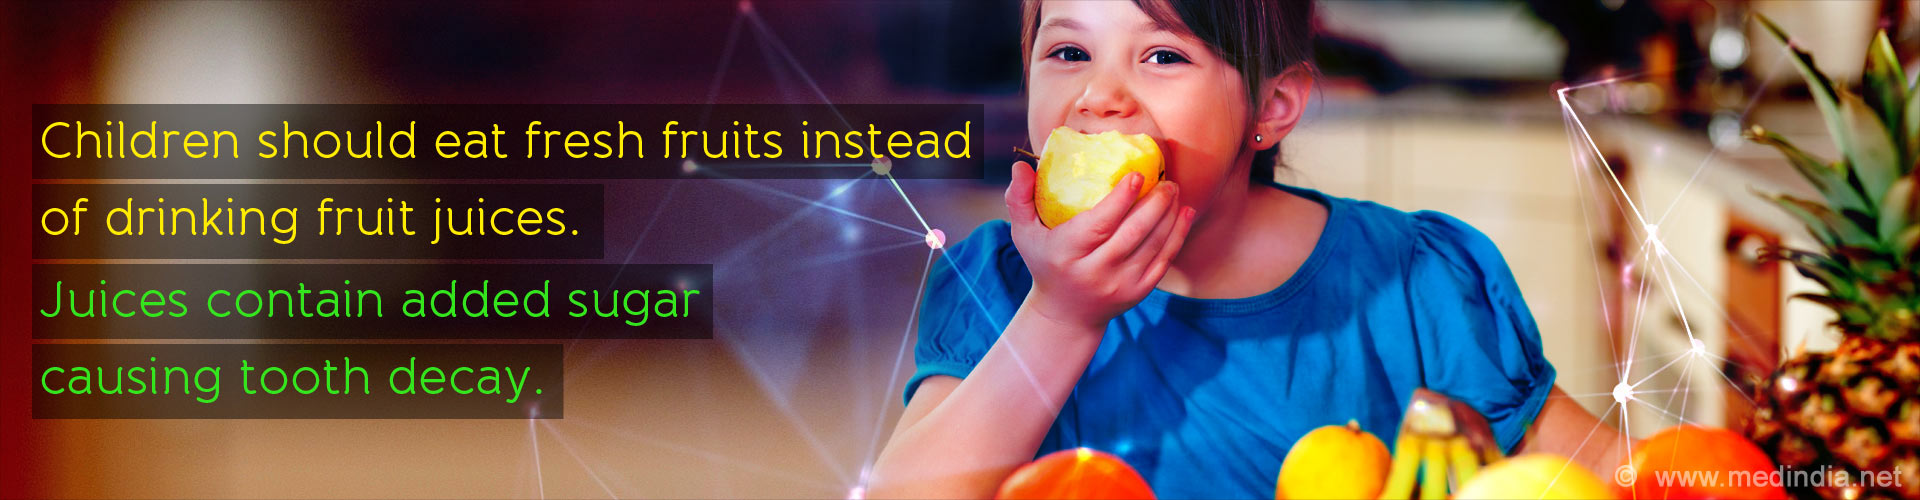 Children should eat fresh fruits instead of drinking fruit juices. Juices contain added sugar causing tooth decay.